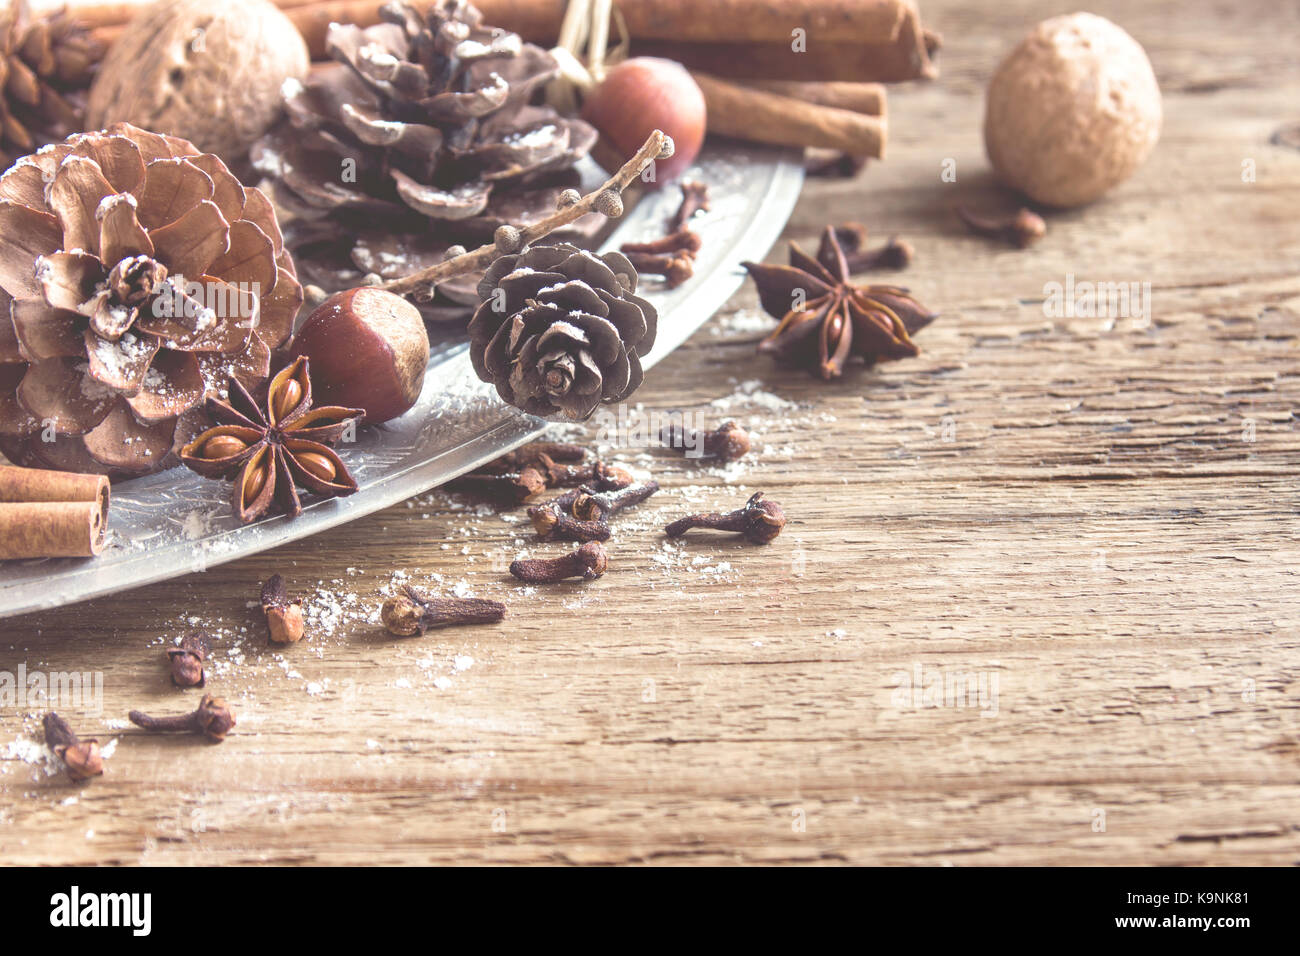 Christmas vintage decoration with cinnamon sticks and star anise, cones, nuts and Christmas ornaments over rustic - Stock Image